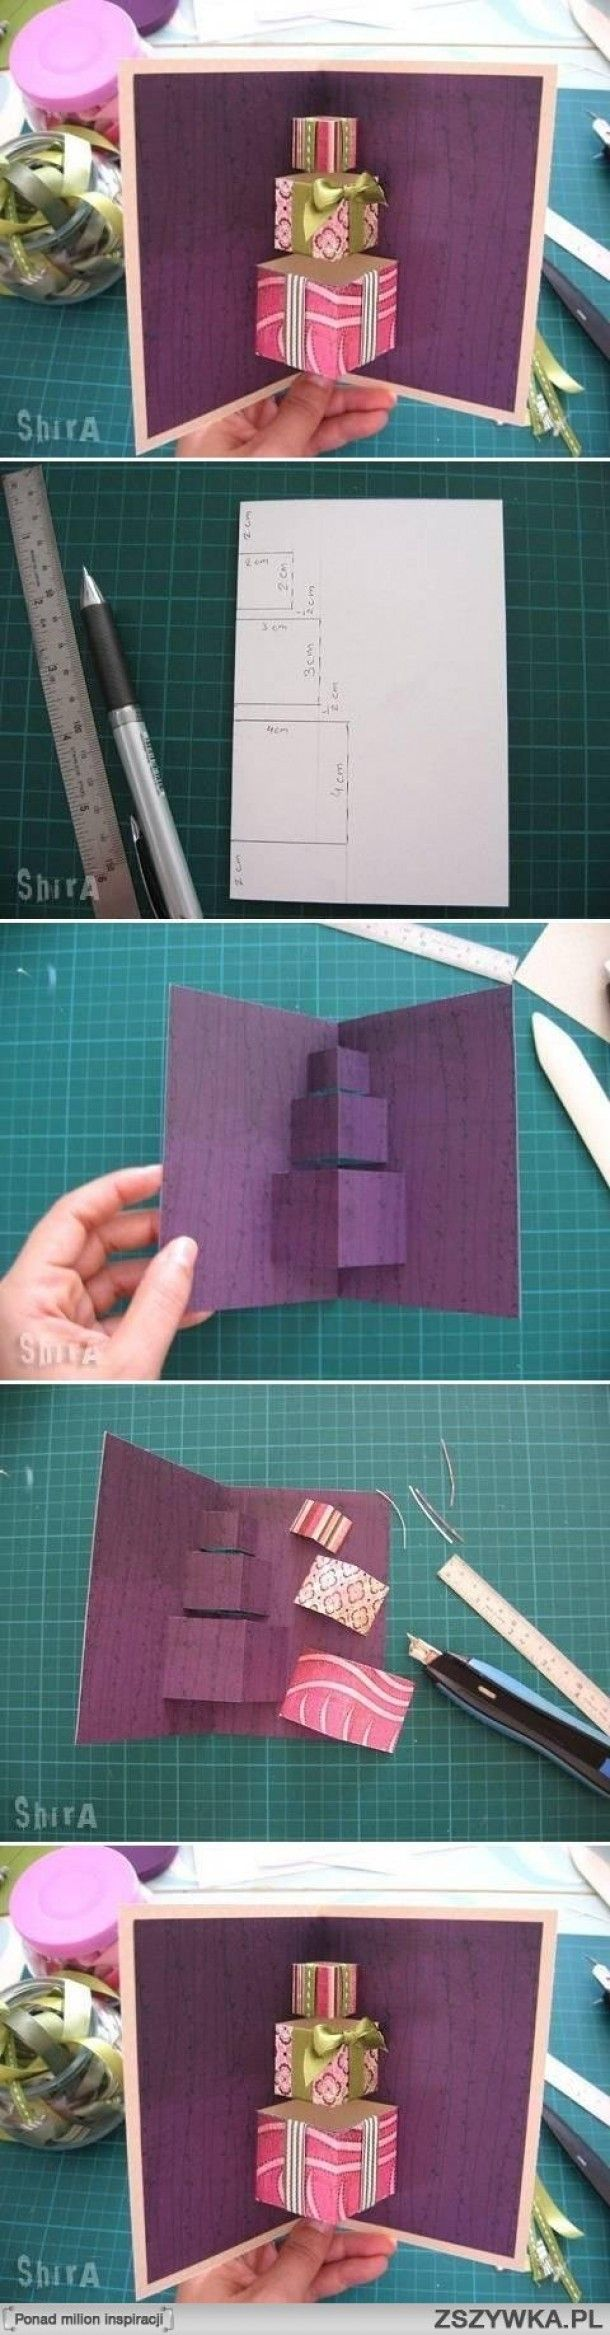 pop-up gifts card tutorial